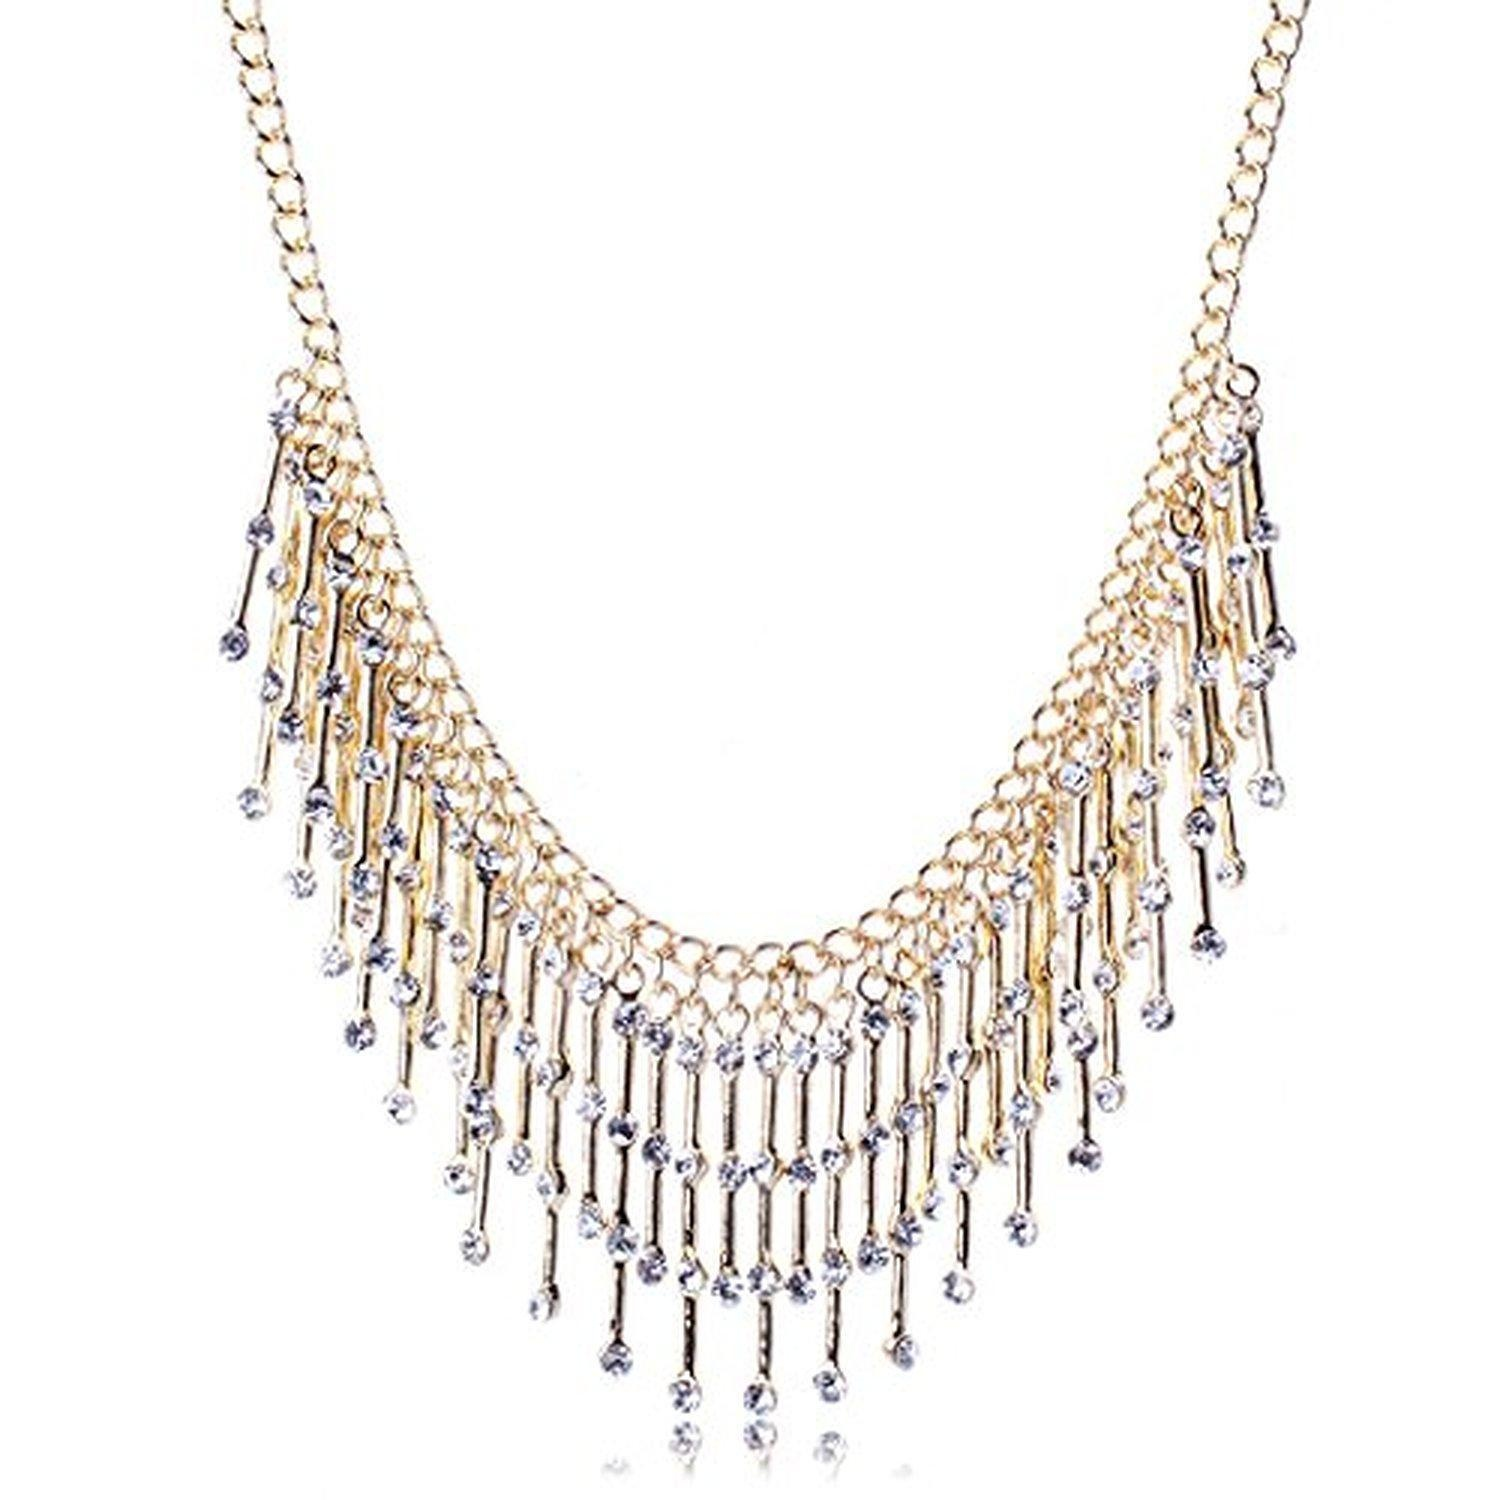 ARICO Big Tassel Necklace Multi Layer Maxi Bohemian Necklace Rhinestone Crystal Necklace Jewelry Gold Plated NB659